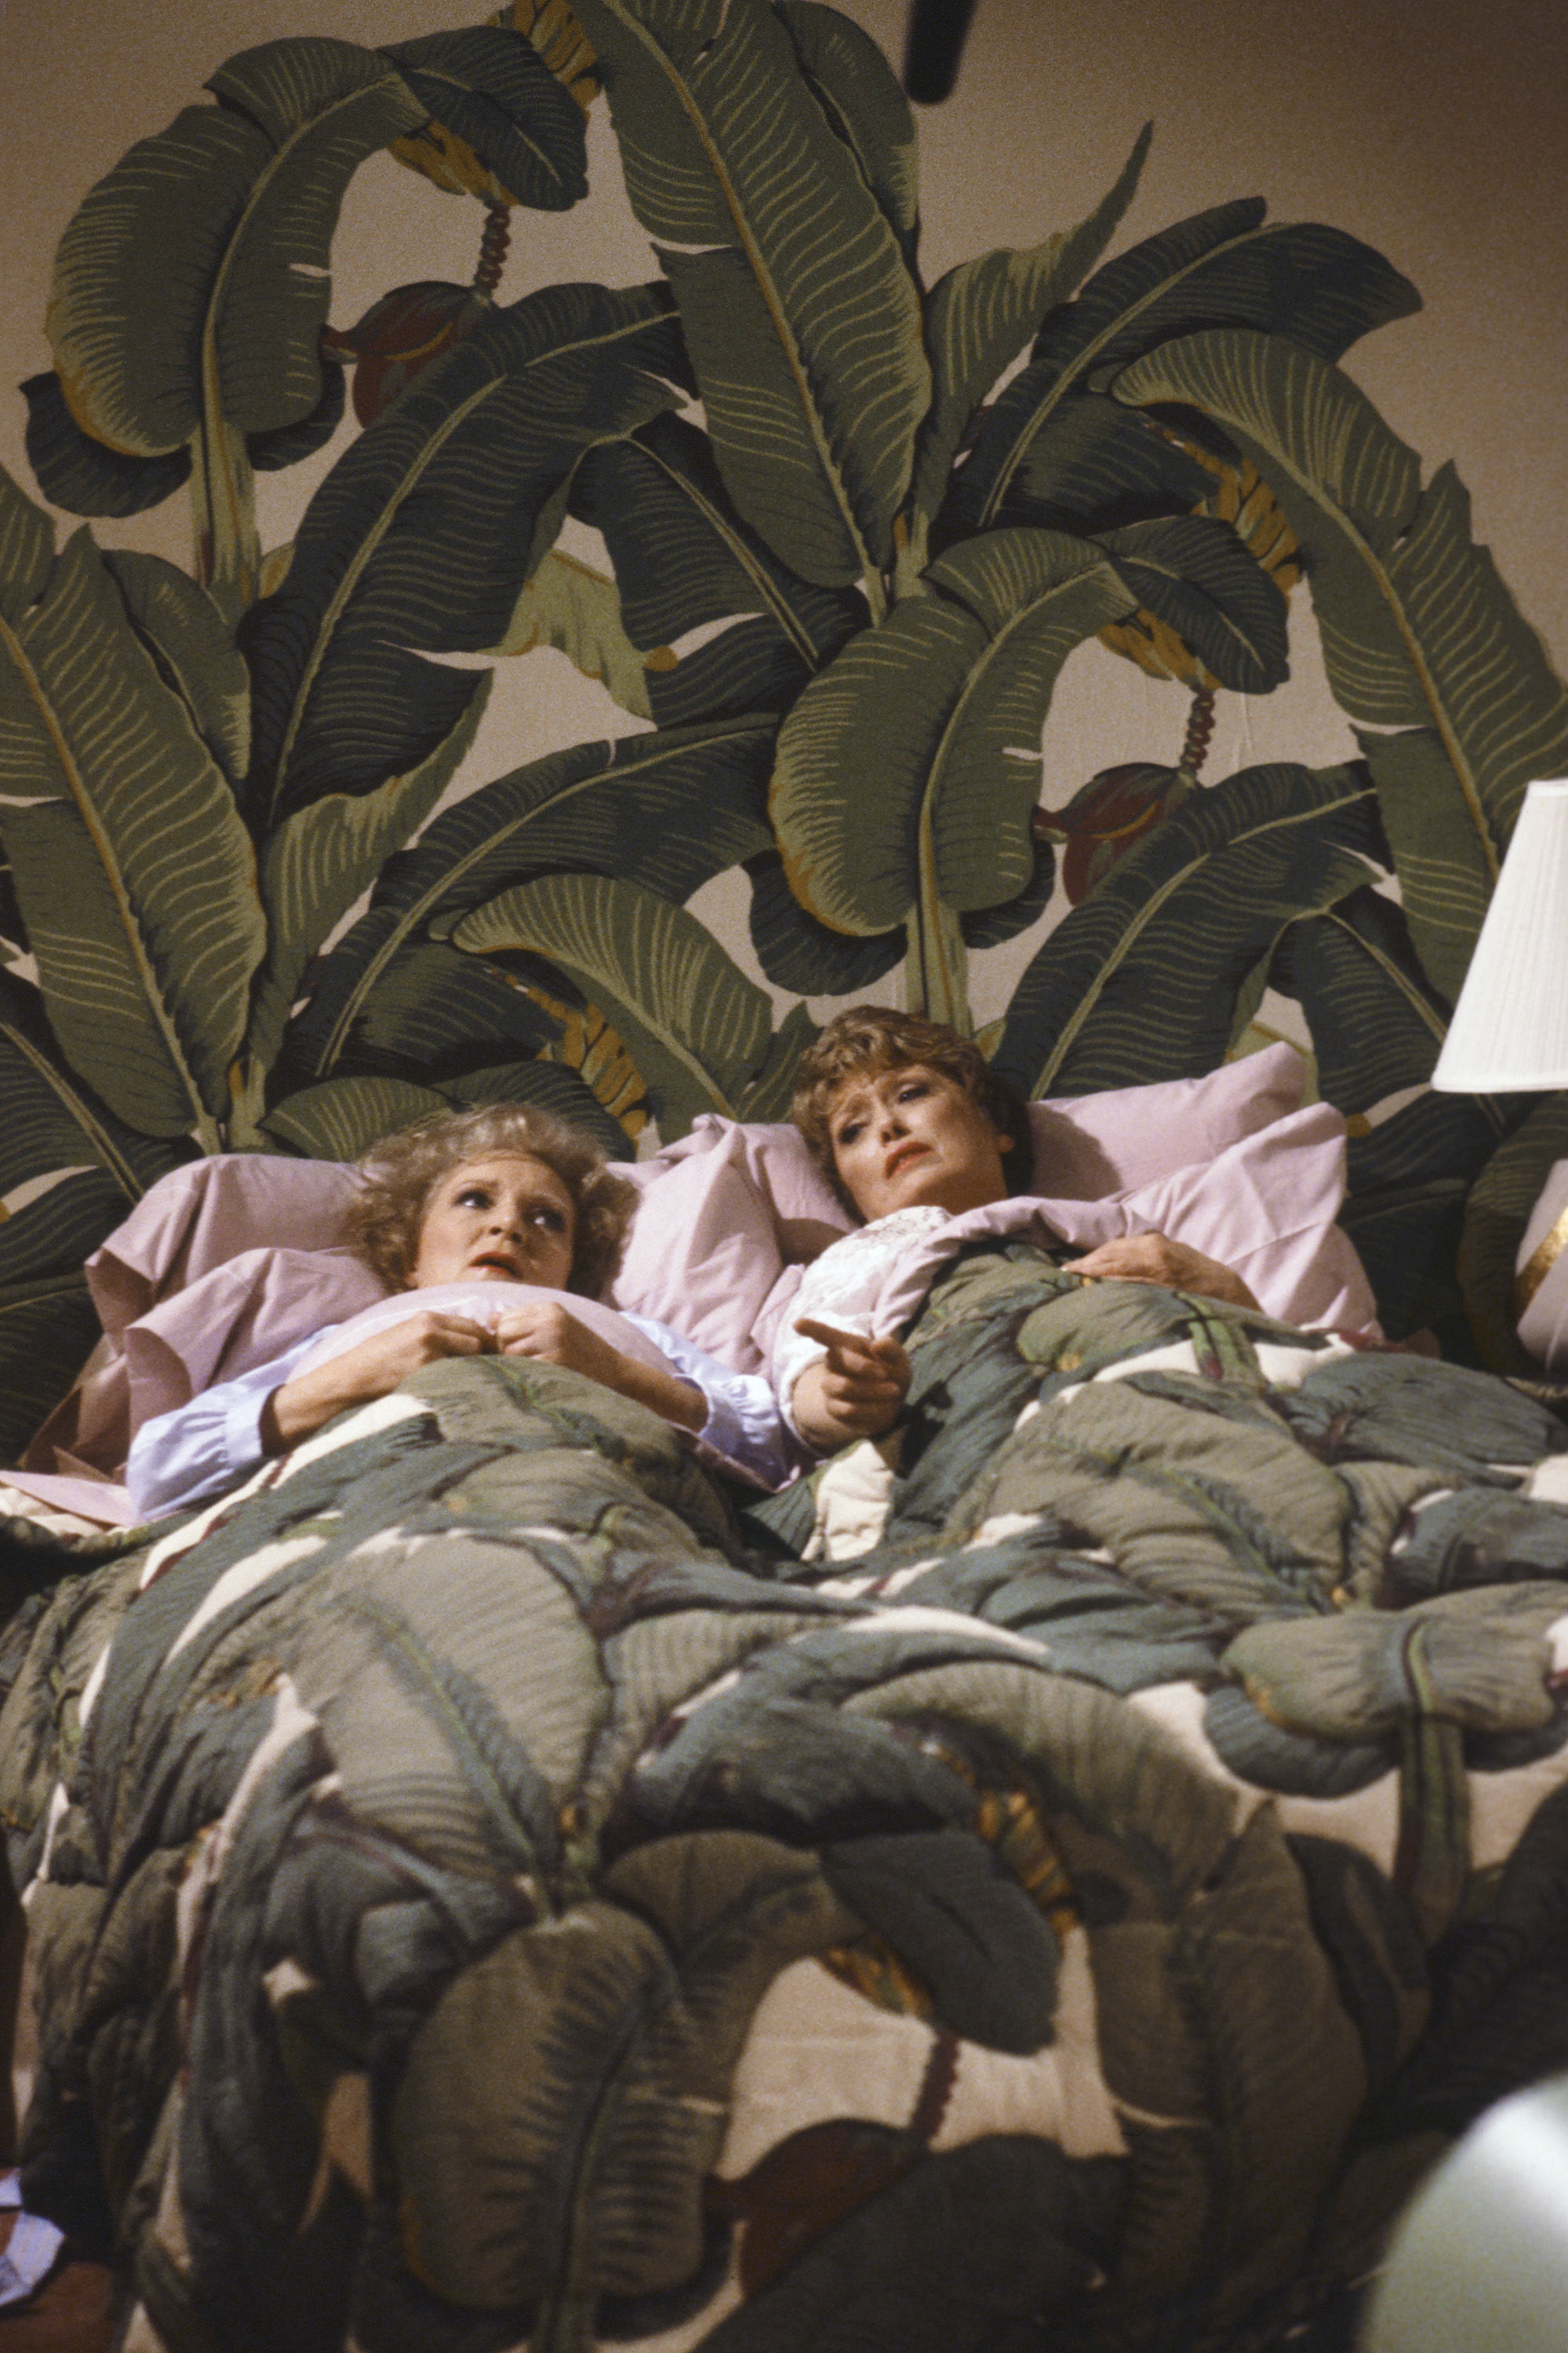 <i>The Golden Girls</i> Production Designer Slept with Blanche's Iconic Bedspread to Keep It from Being Stolen